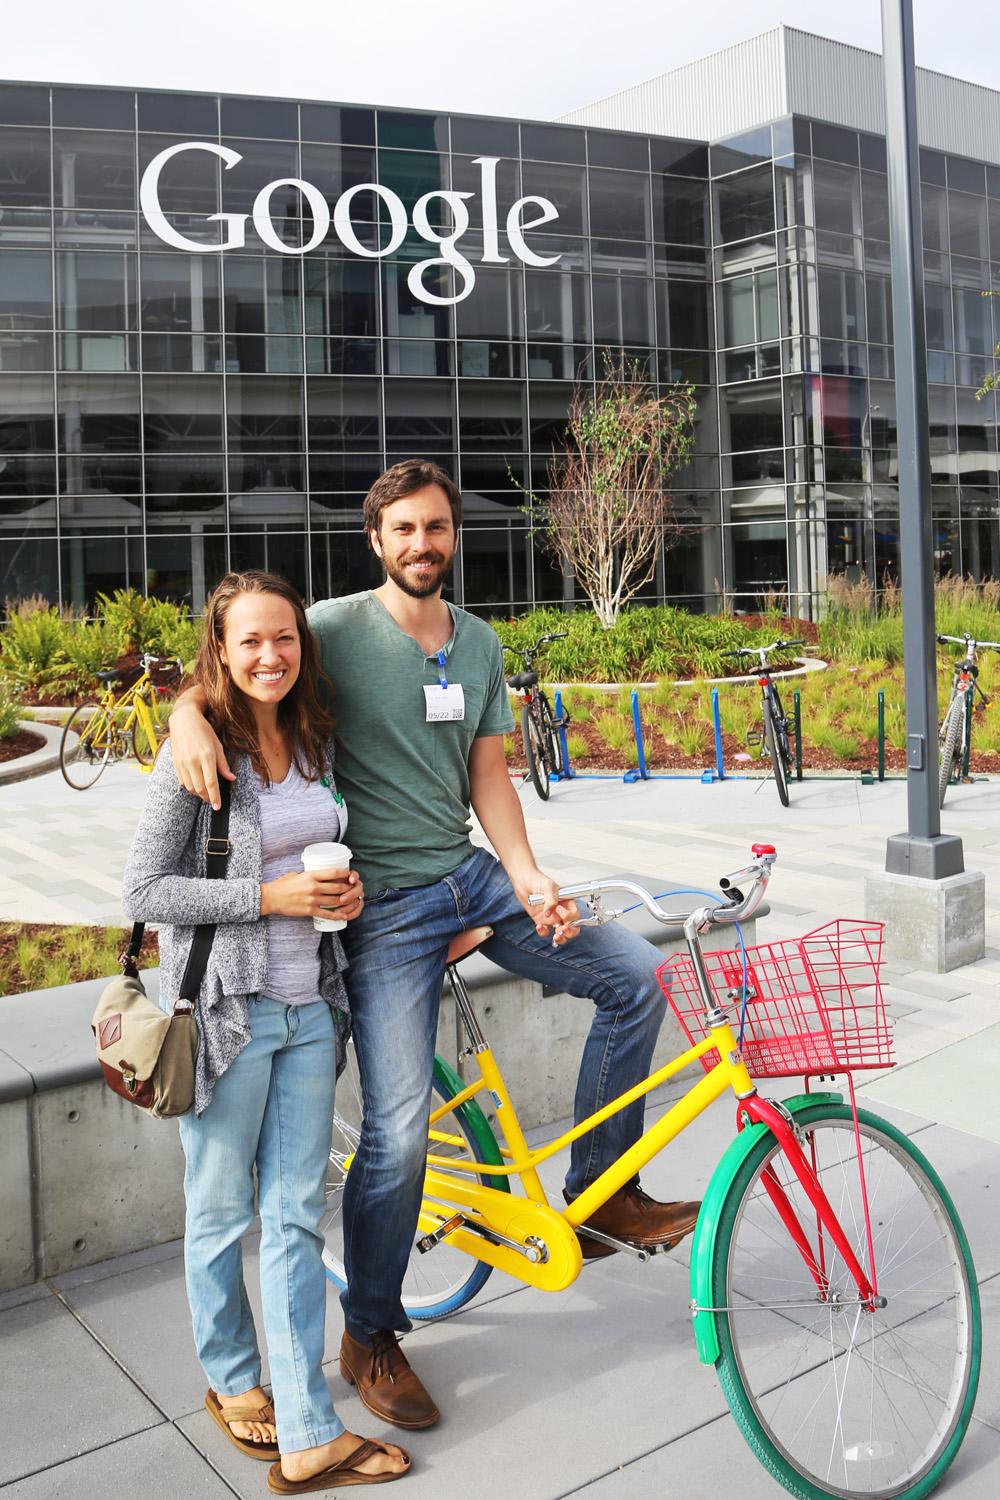 Touring Google's headquarters with Eric's friend and Google employee